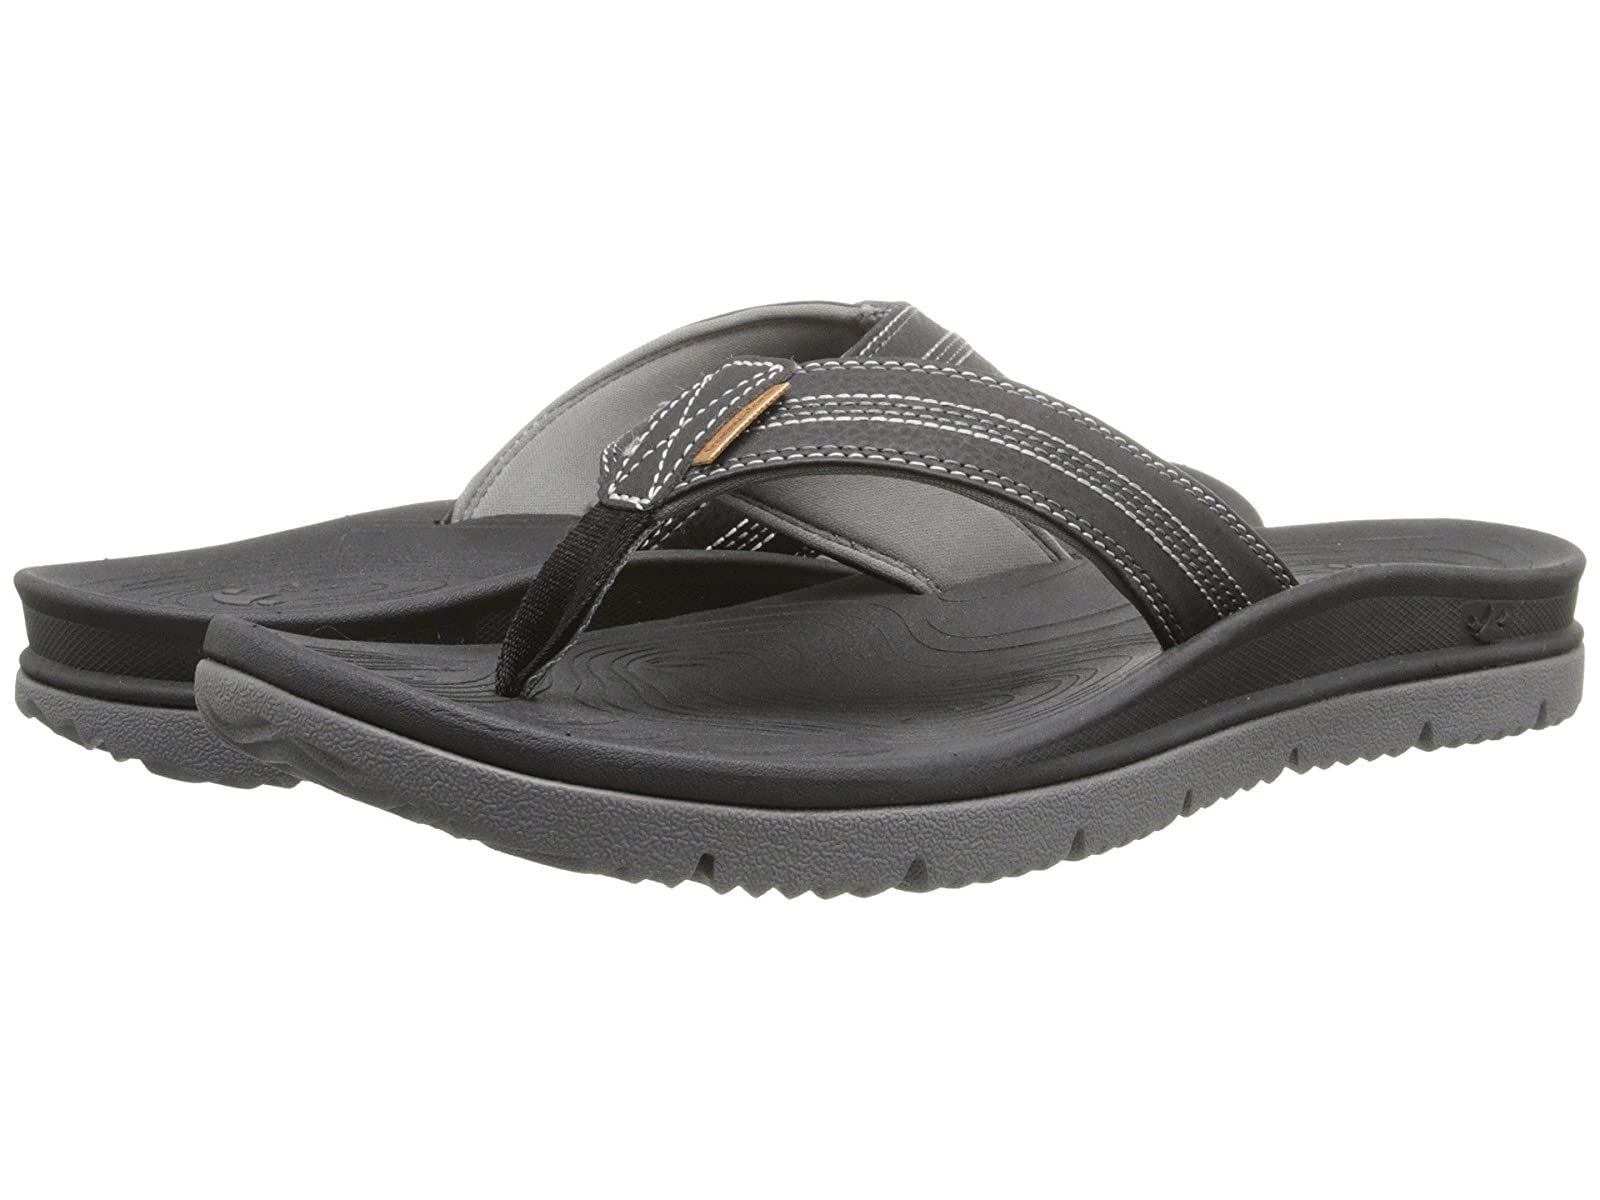 Freewaters Tall BoyAtmospheric grades have affordable shoes